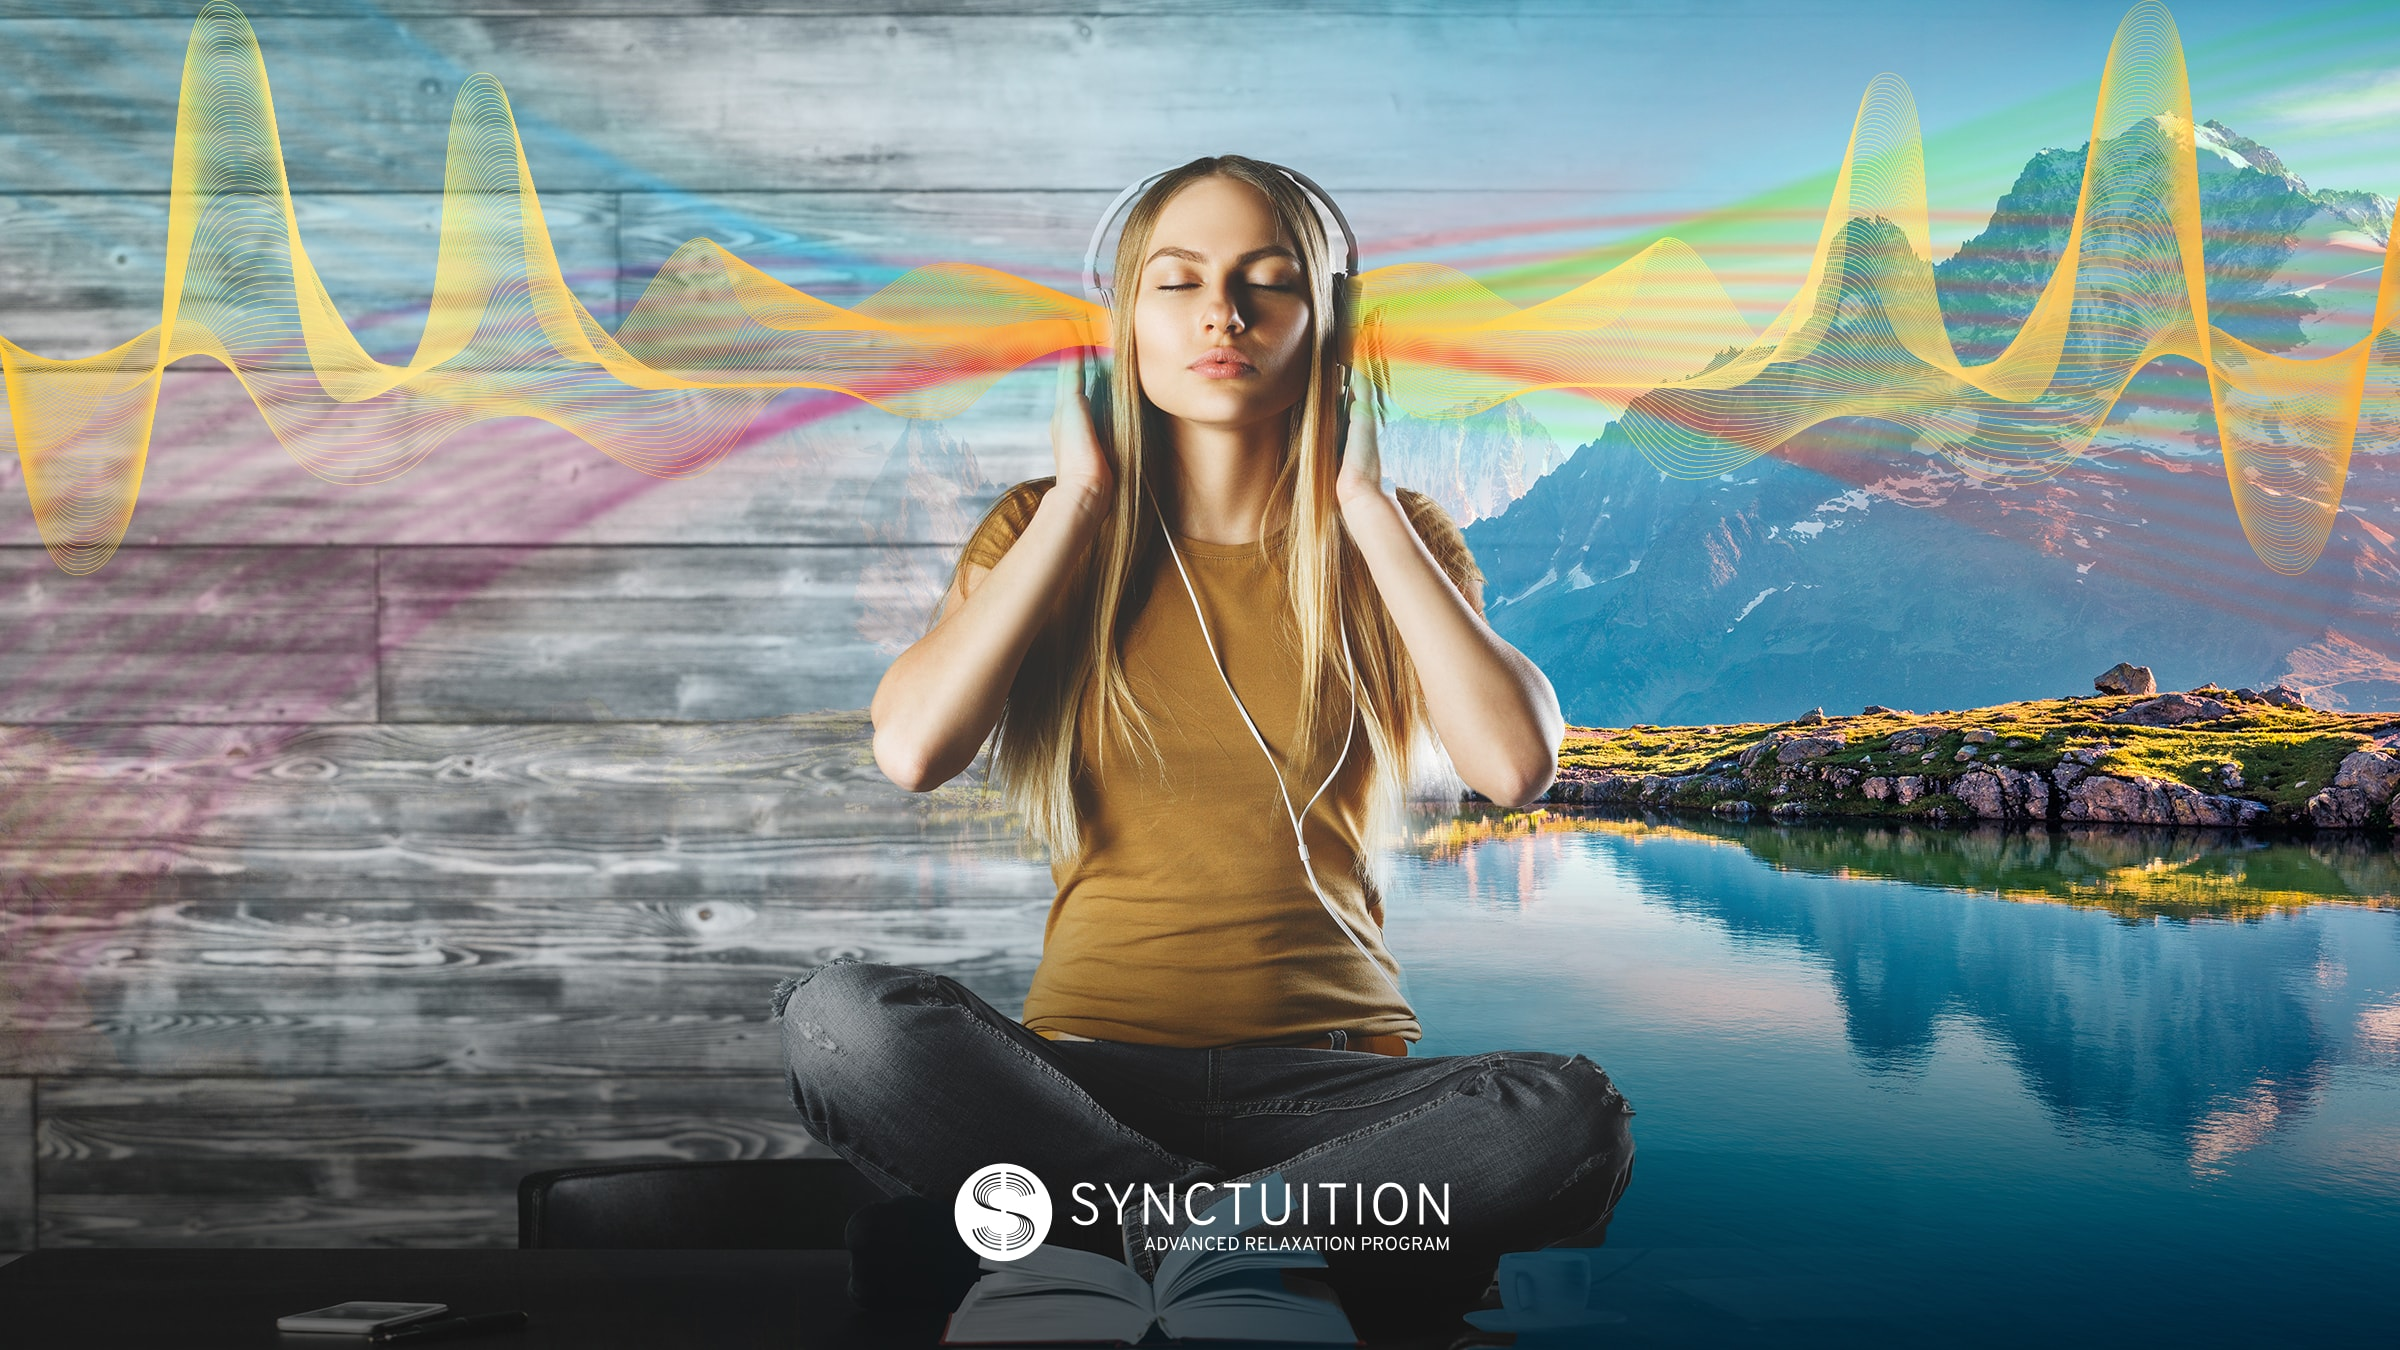 Synctuition becomes the 3rd biggest meditation and mindfulness app.